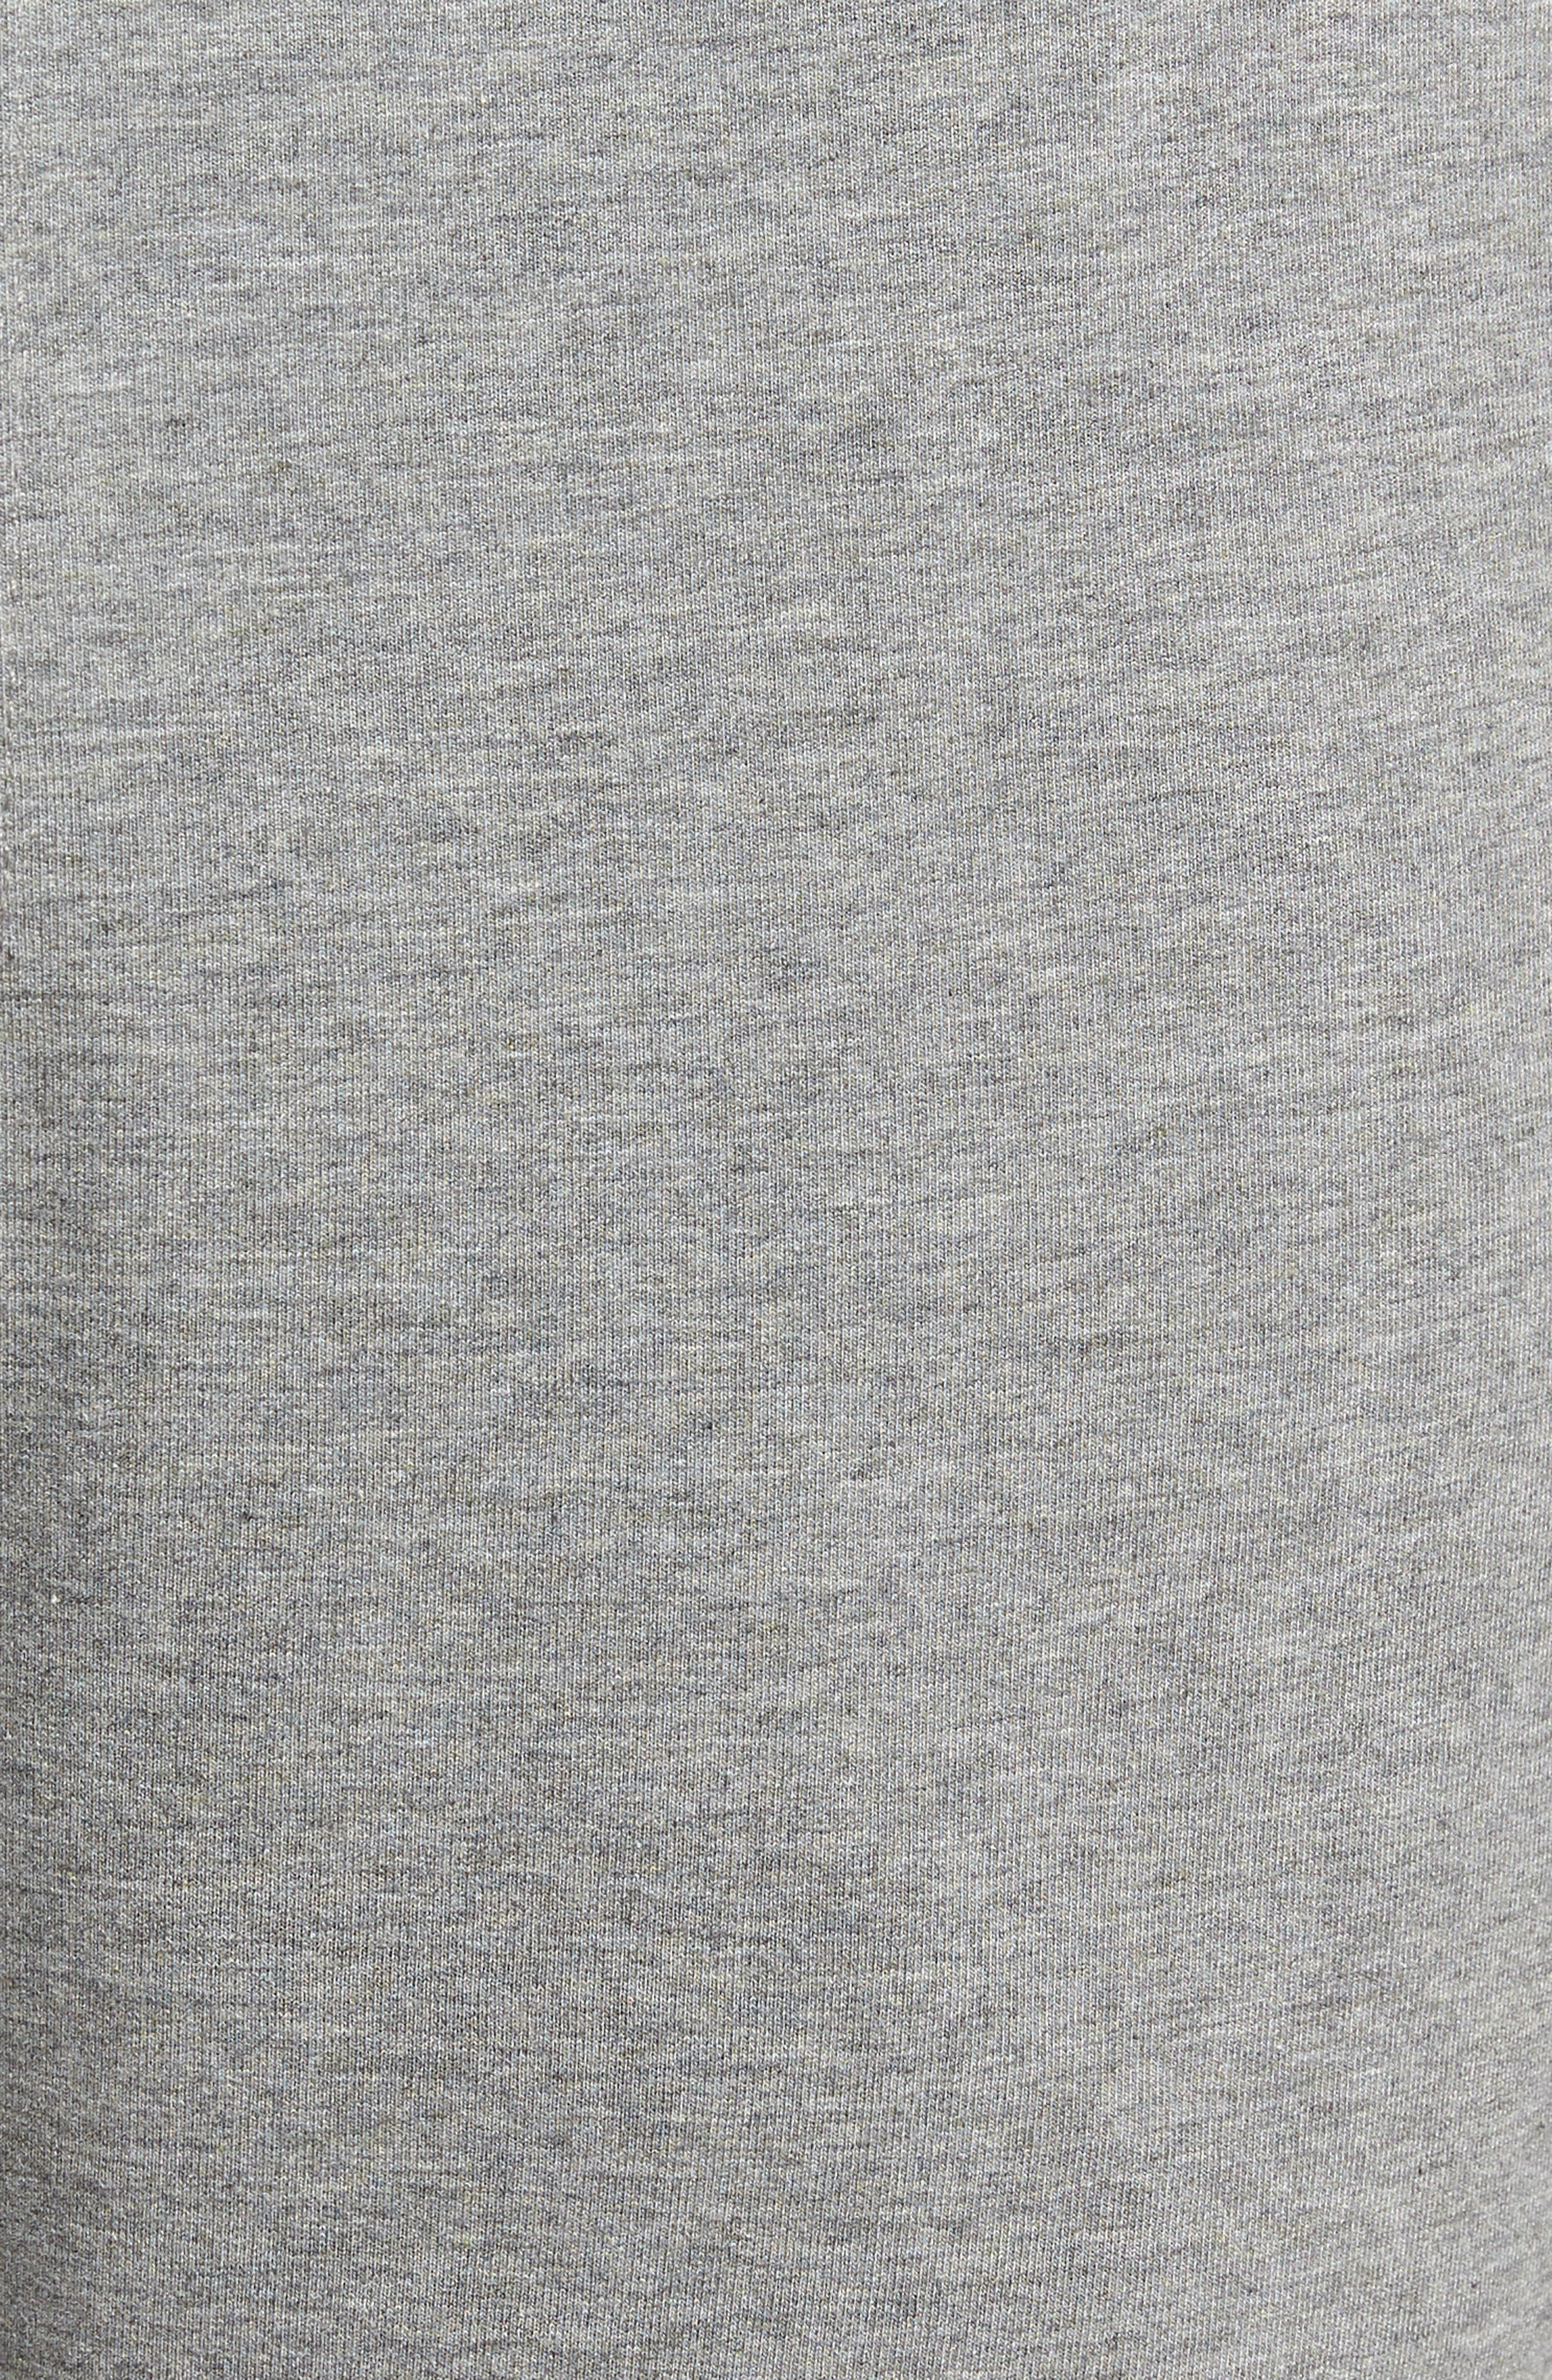 Legacy II Semi-Fitted Knit Athletic Shorts,                             Alternate thumbnail 5, color,                             HEATHER GRAY